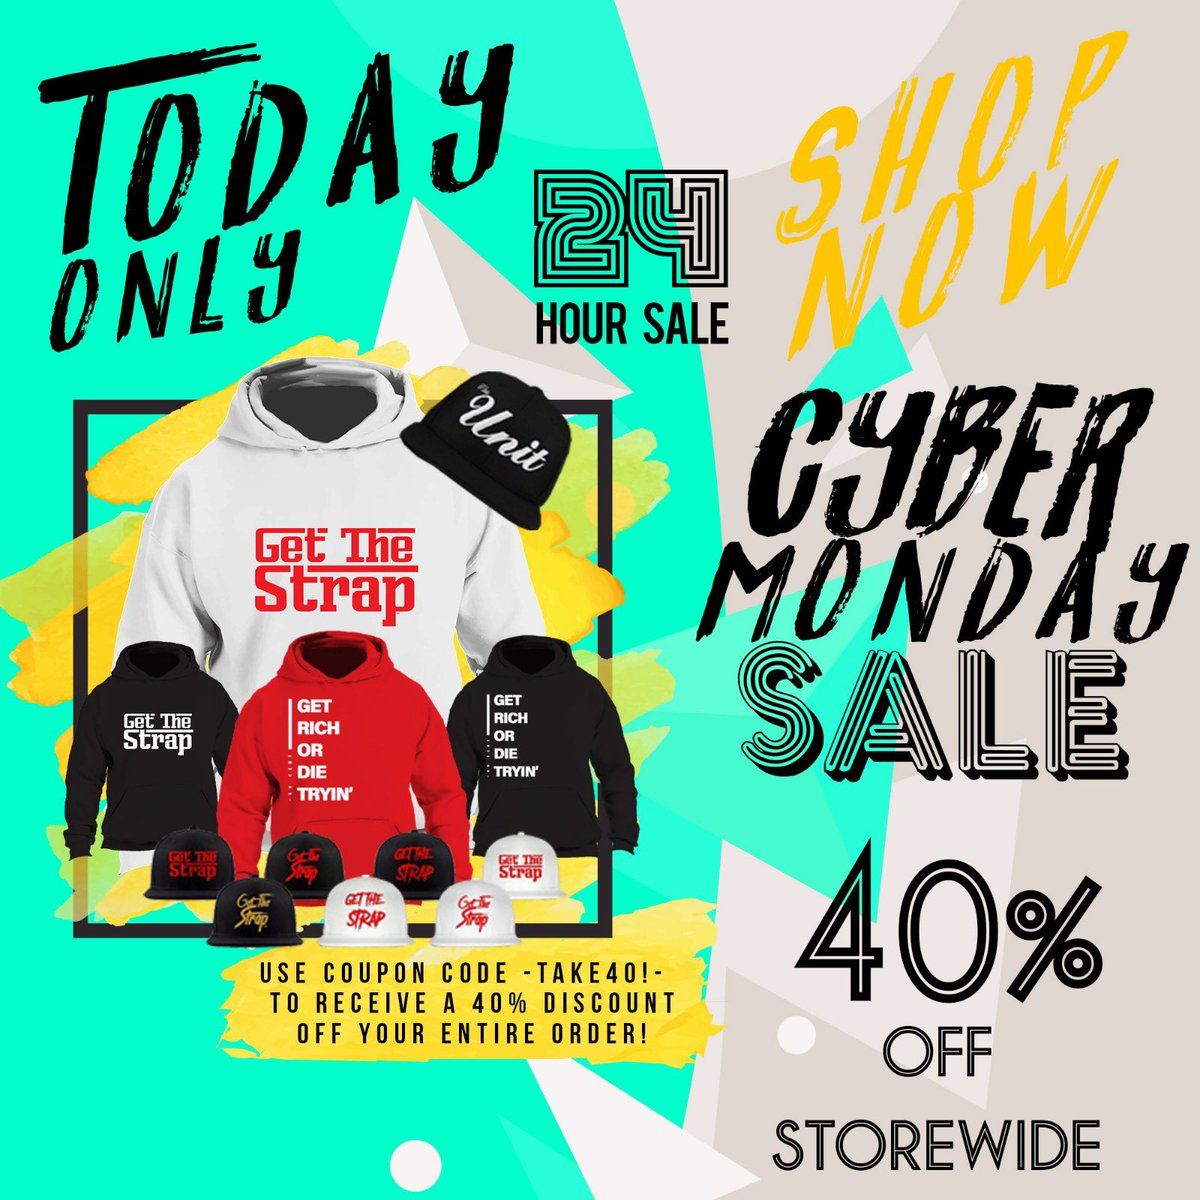 Cyber Monday Sale: 40% OFF EVERYTHING!! Today Only!  https://t.co/fOHBnoBOTi  Use Promo Code: TAKE40! https://t.co/aHX4PRgfCR